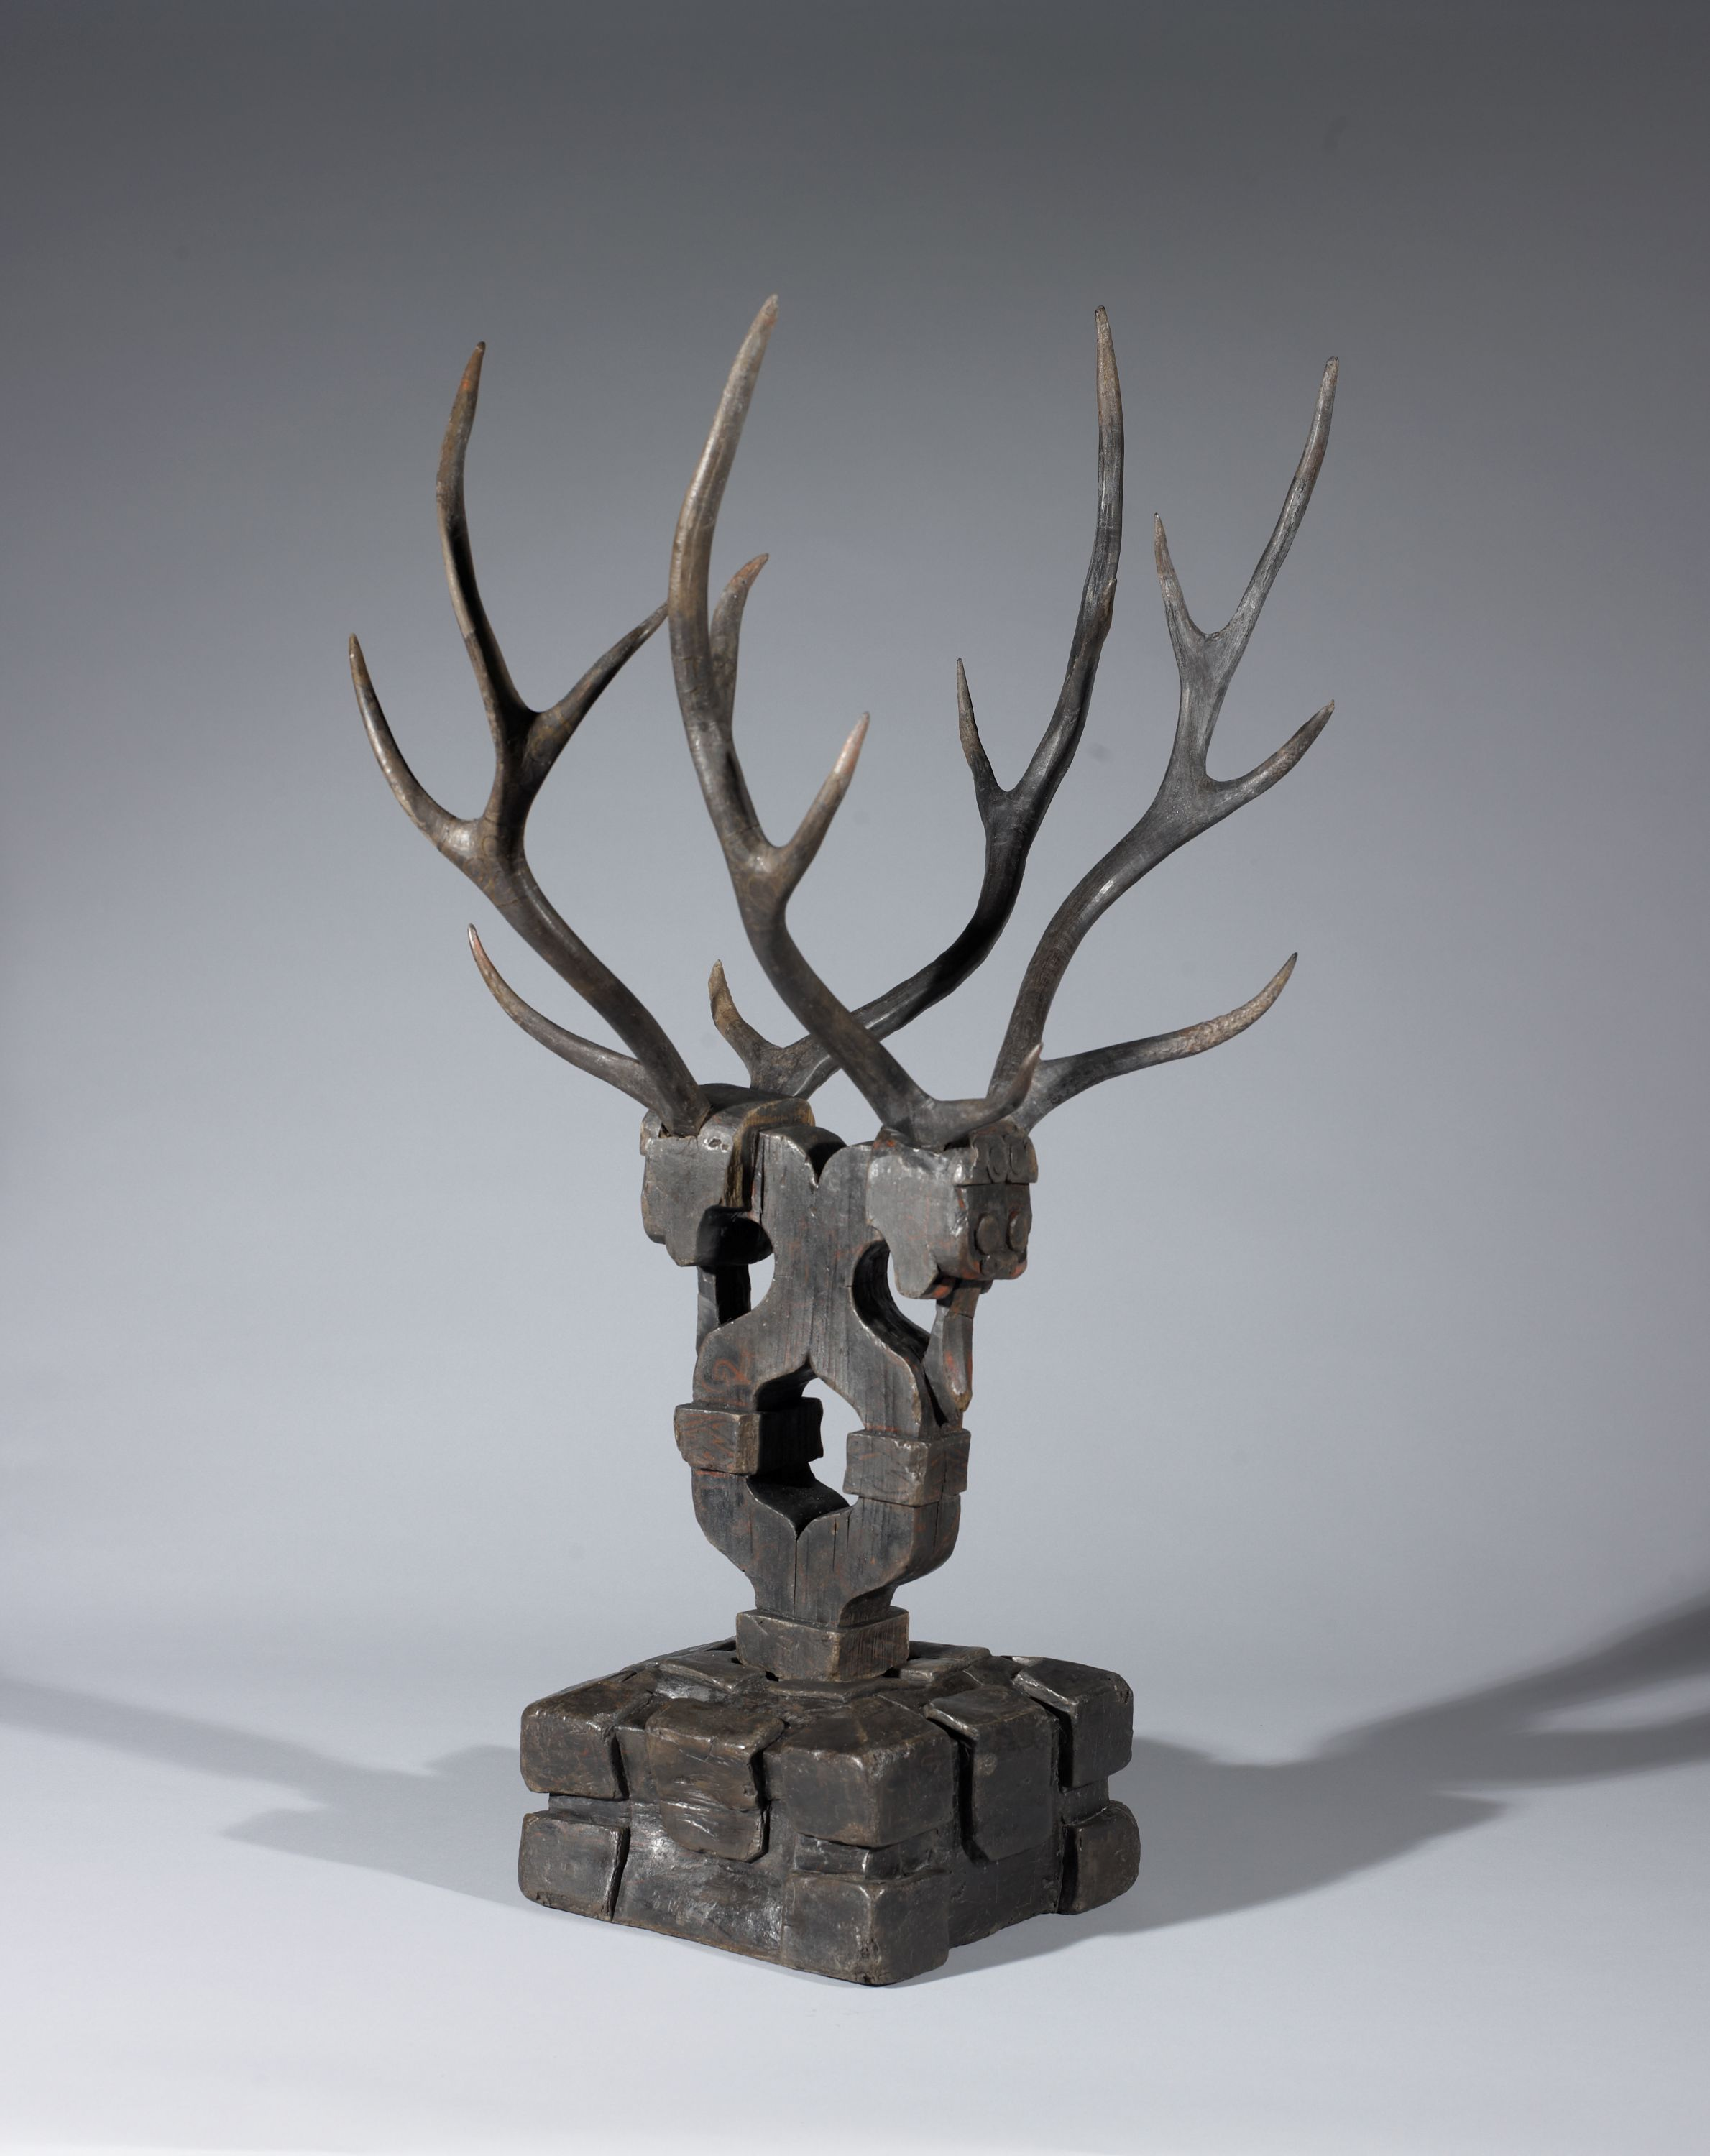 While these antlers seem like decor for a cabin today, they had quite a different purpose in 300 B.C. These antlers were used as a tomb guardian, placed inside the doors of tombs to protect the soul of the deceased or to accompany them on a journey to the afterlife.  // Asian Galleries